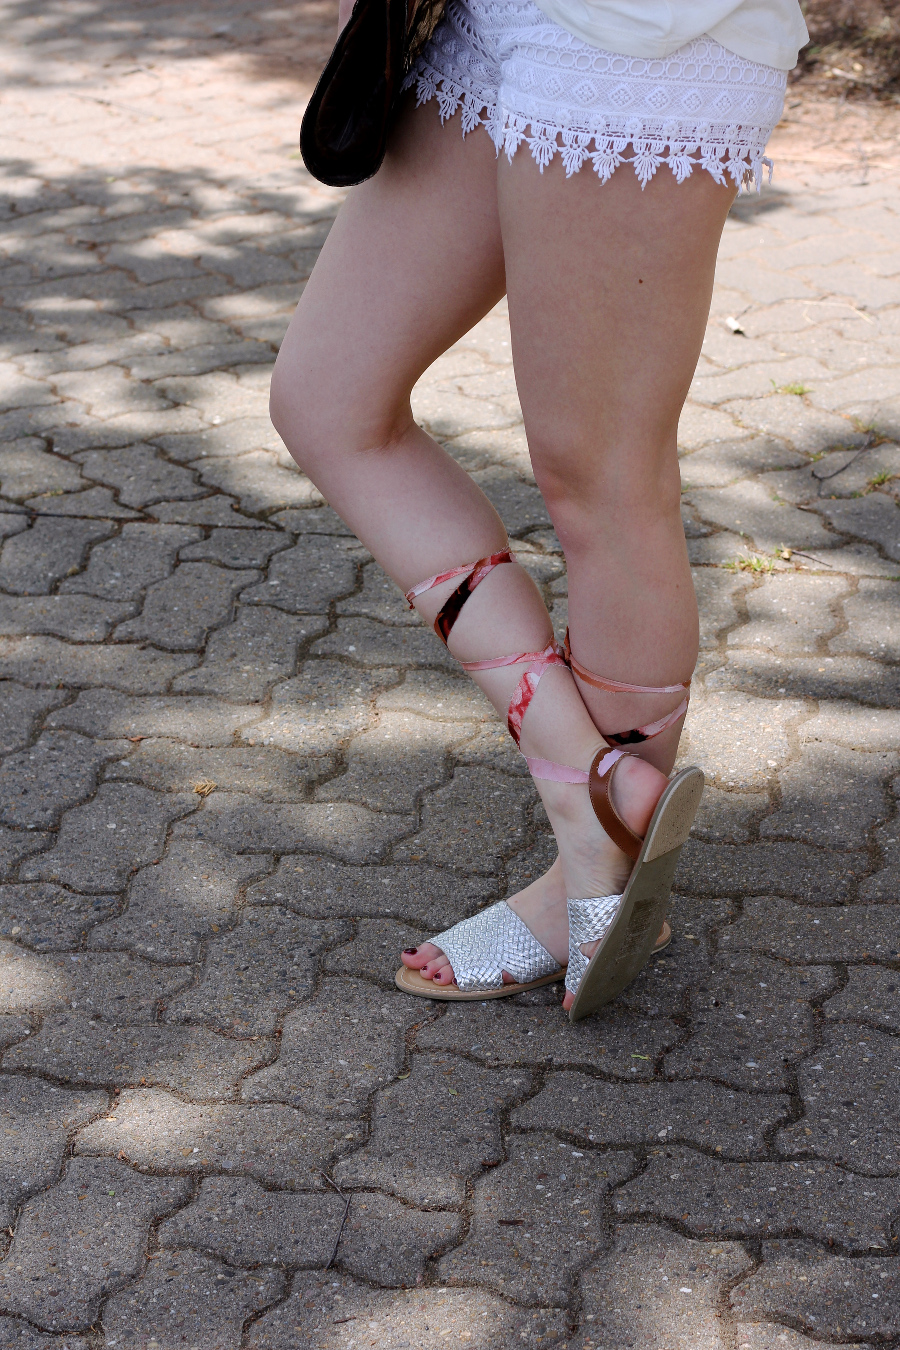 outfit-sandalen-diy-selfmade-stoff-silber-beine-legs-pale